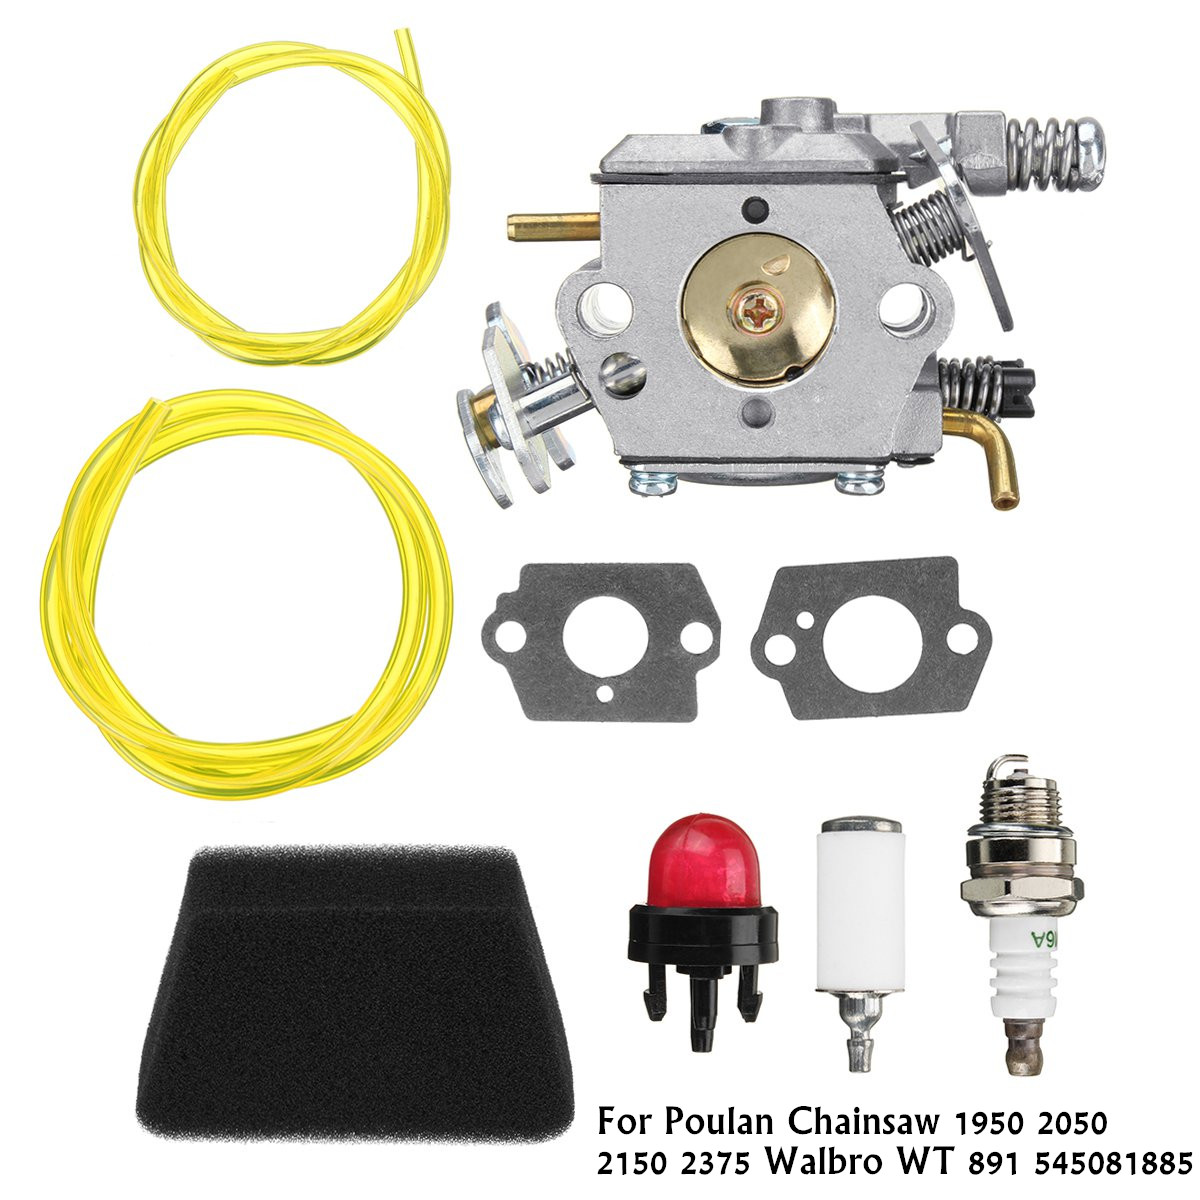 One set Carburetor Carb Kit 545081885 For Poulan Chainsaw 1950 2050 2150 Walbro WT 891